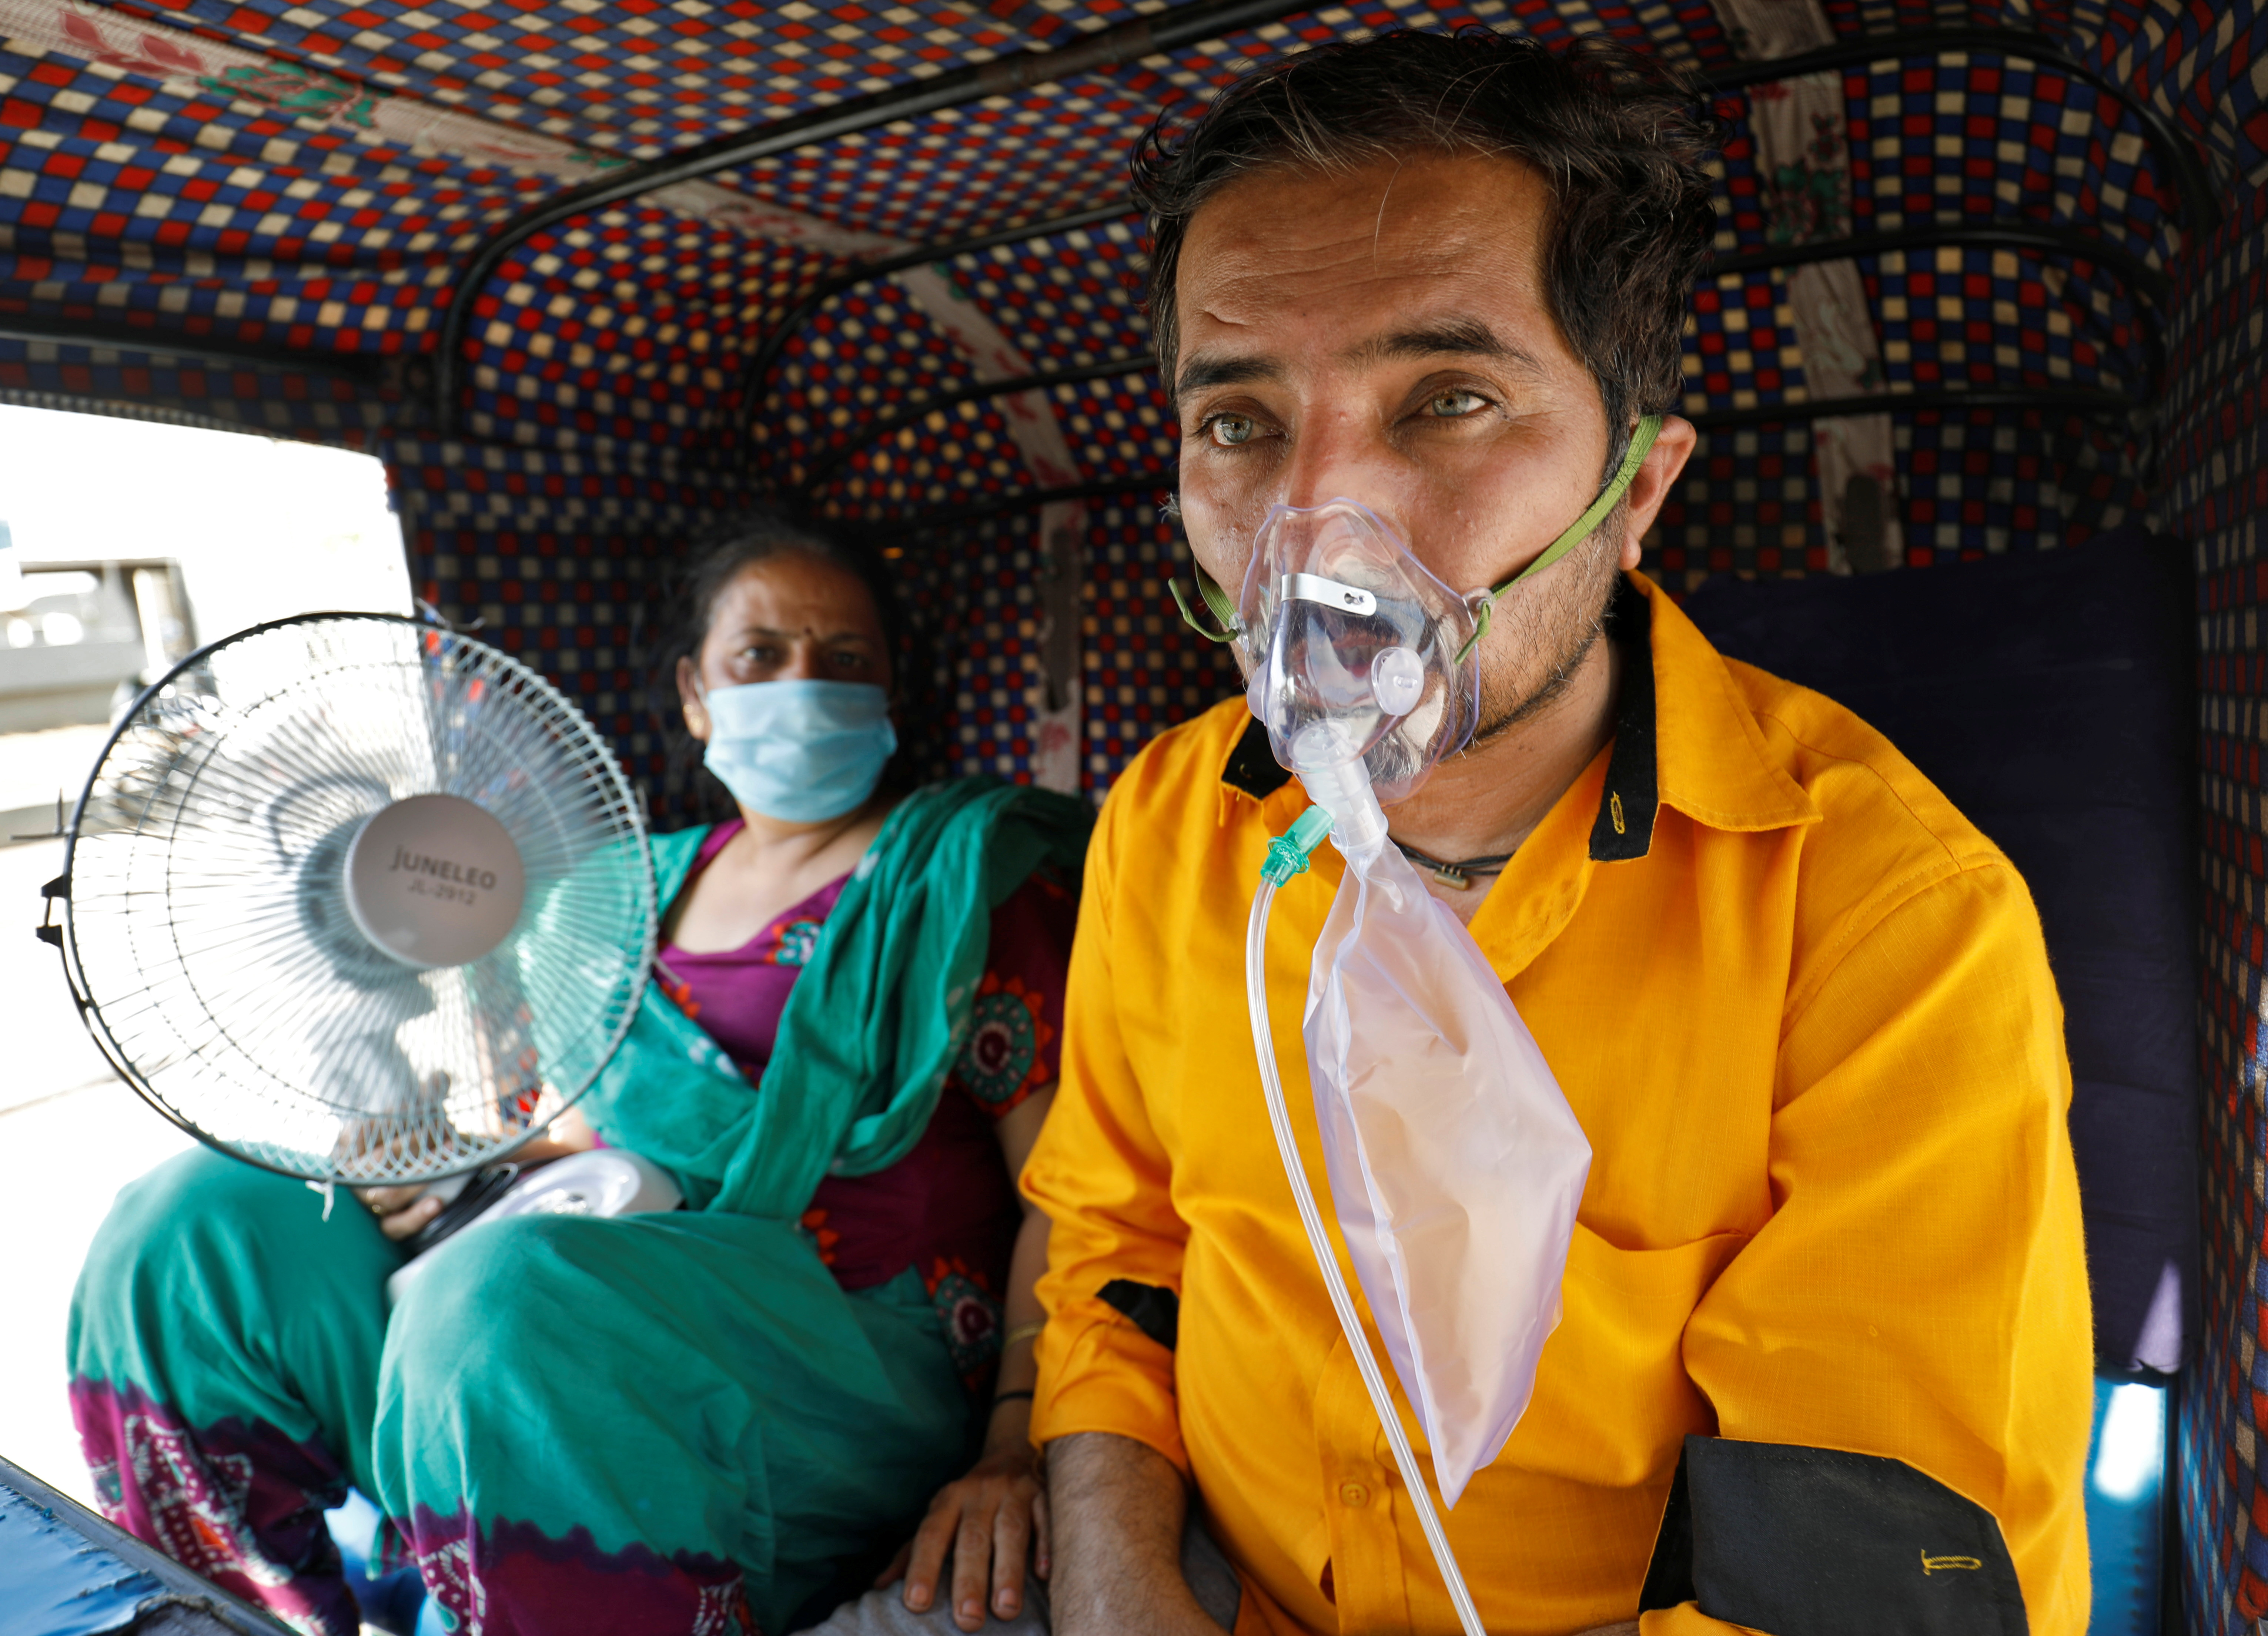 A patient wearing an oxygen mask looks on as his wife holds a battery-operated fan while waiting inside an auto-rickshaw to enter a COVID-19 hospital for treatment, amidst the spread of the coronavirus disease (COVID-19) in Ahmedabad, India, April 25, 2021. REUTERS/Amit Dave